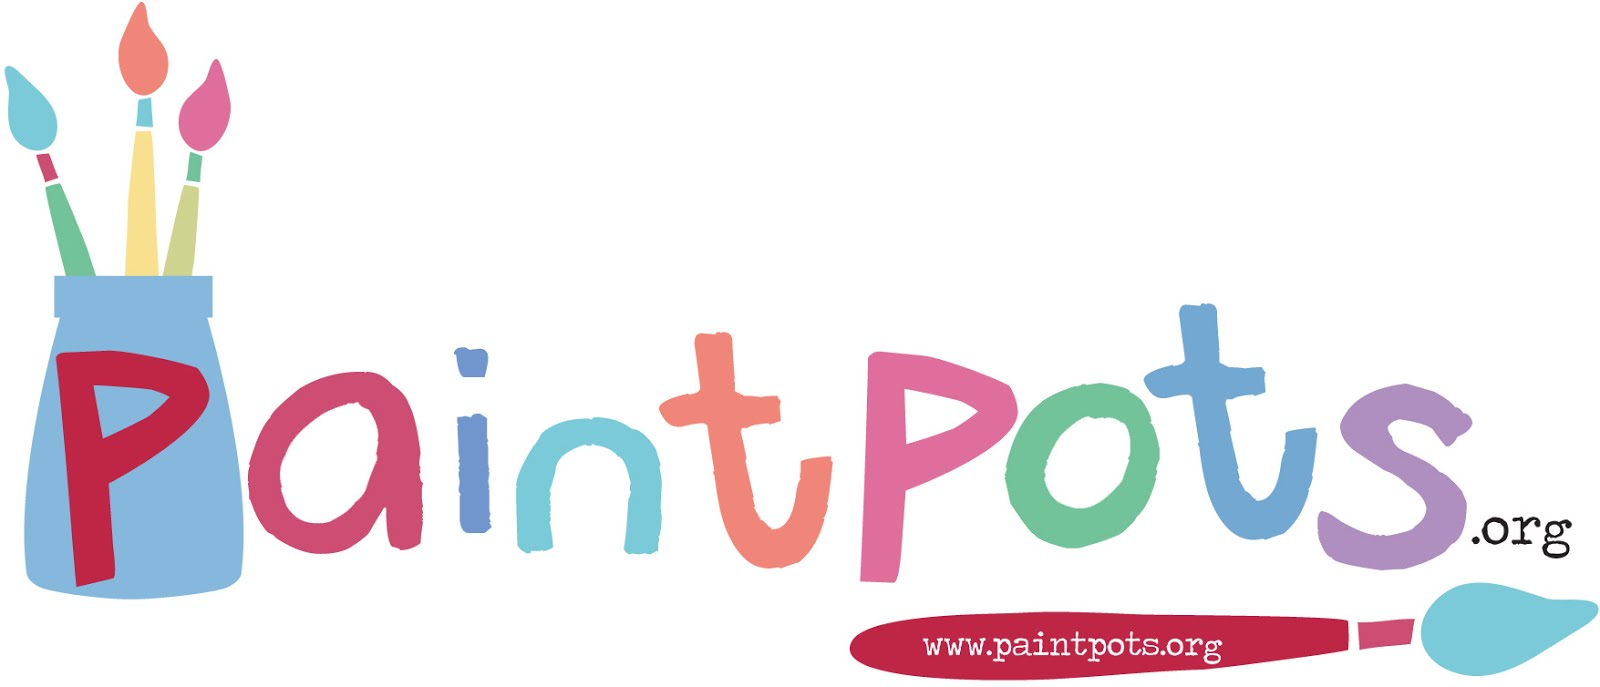 Paintpots - Raise Funds for School or Nursery